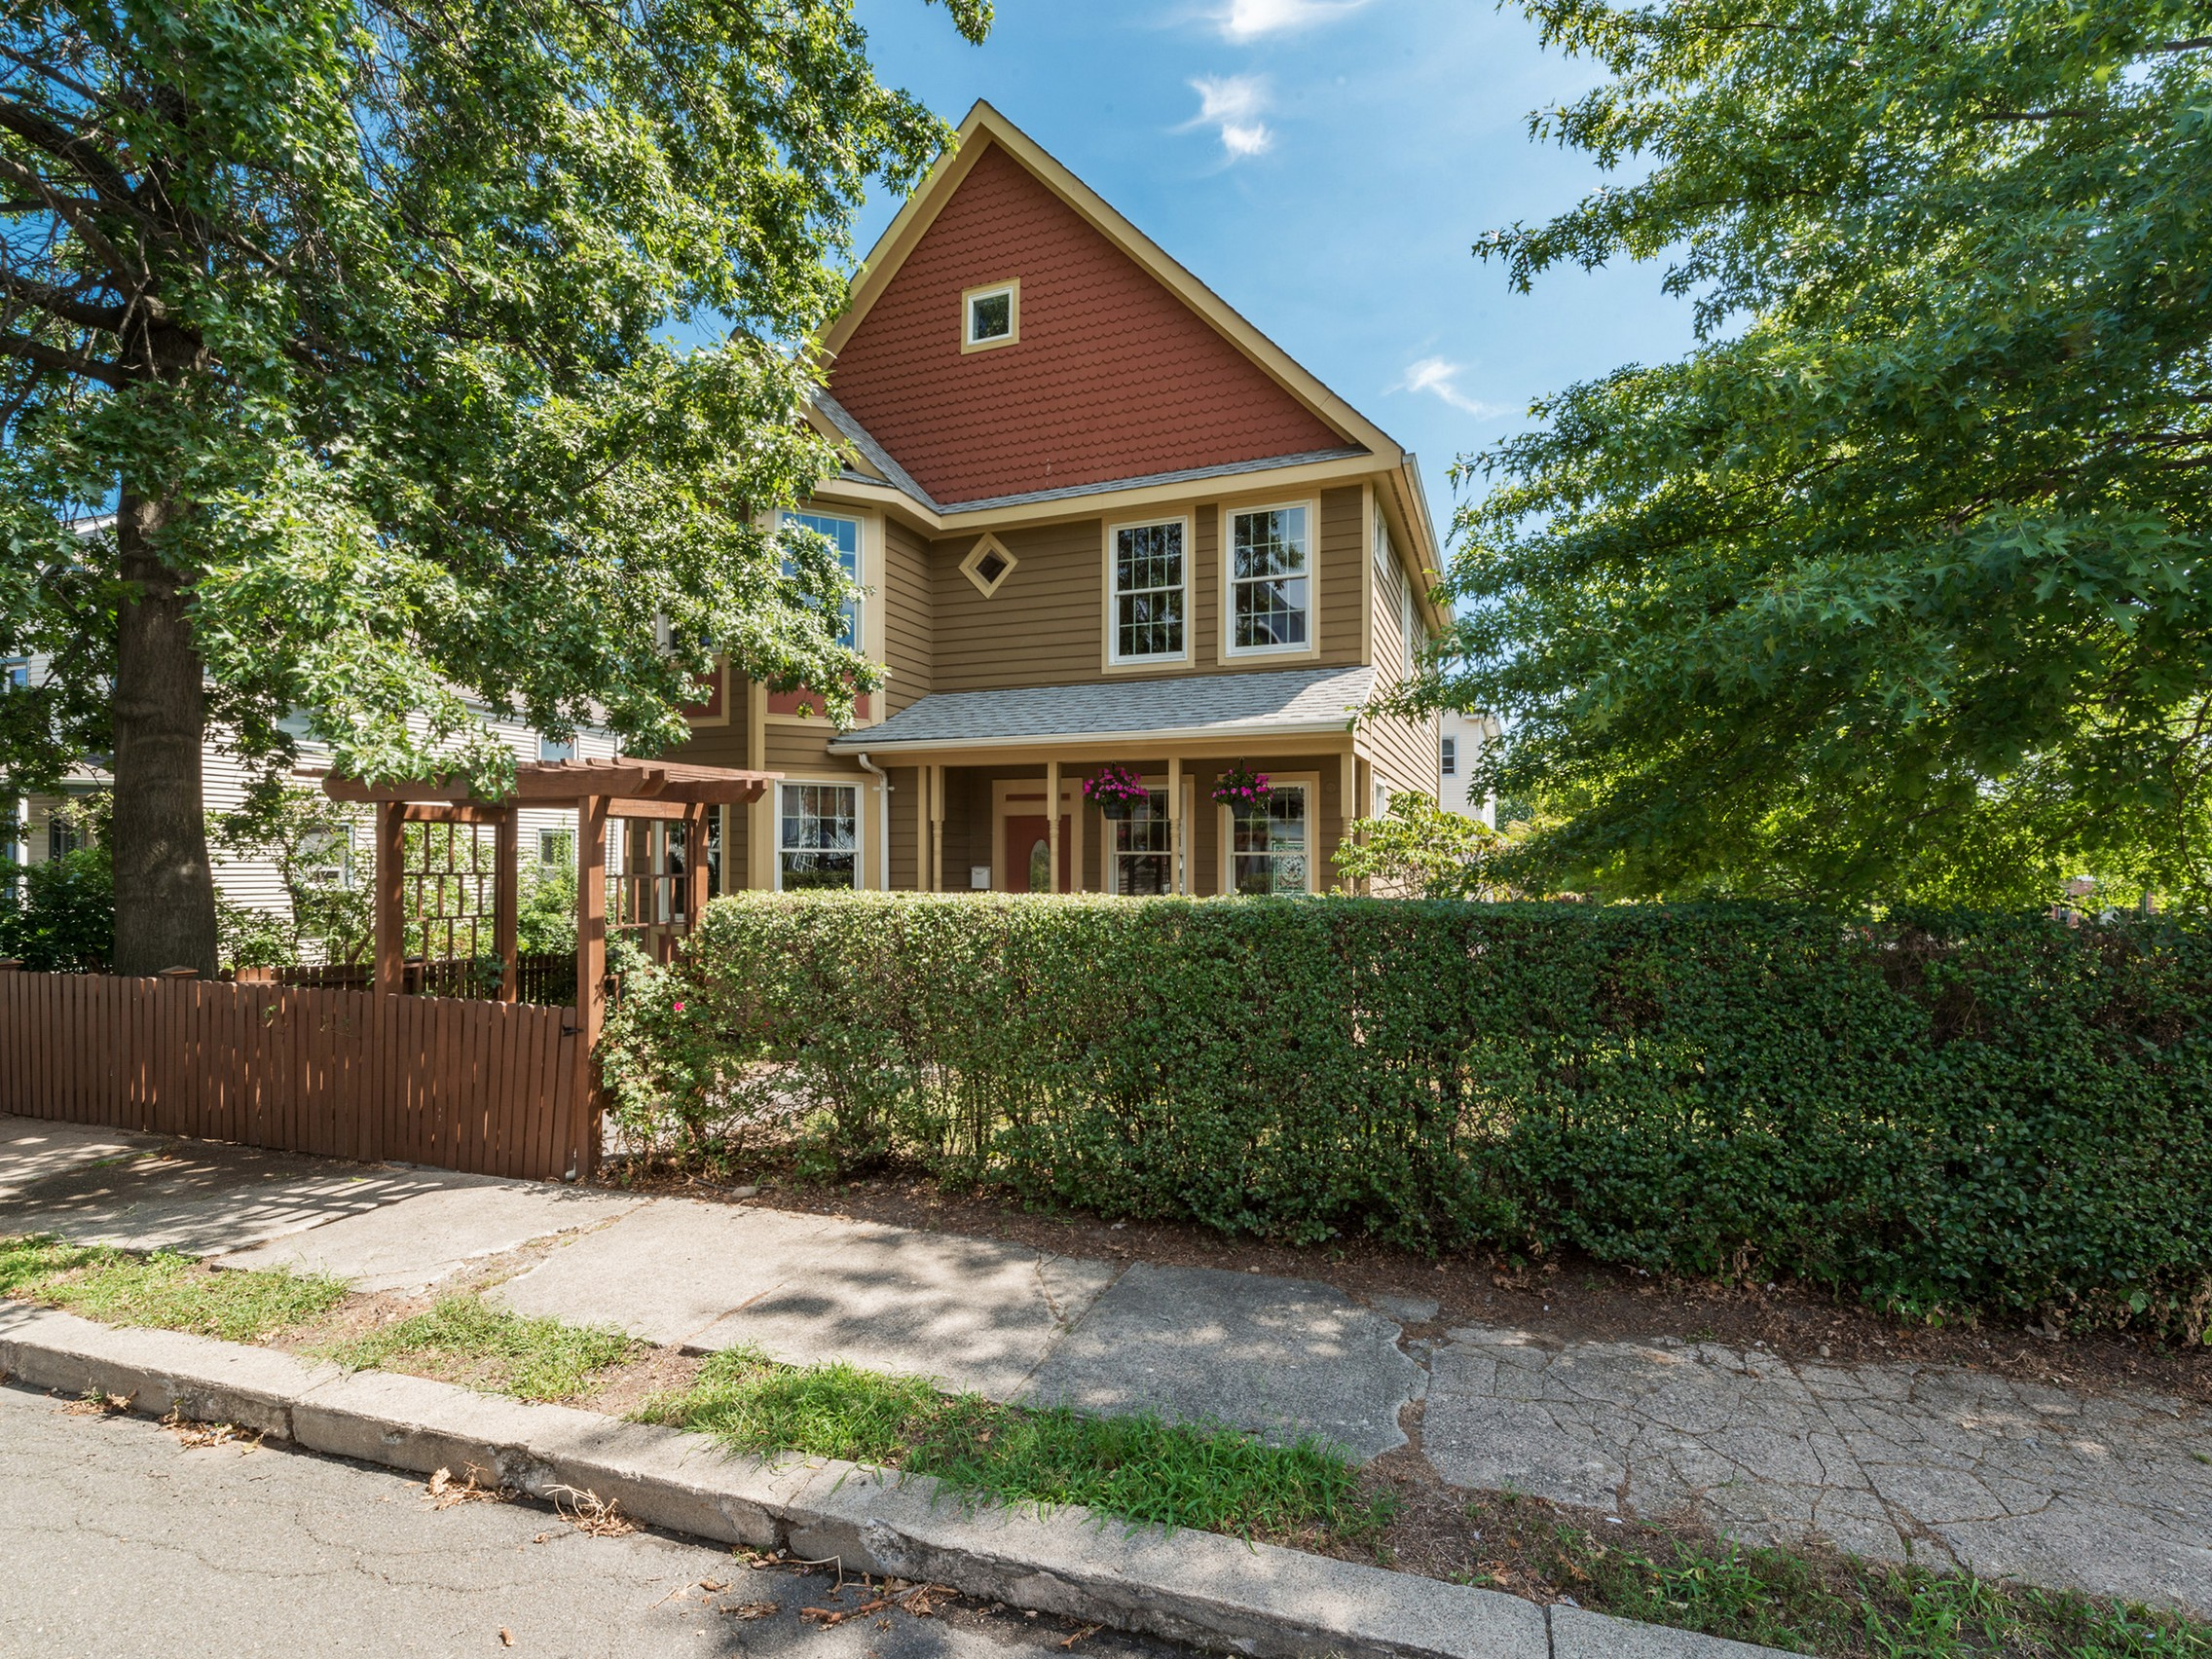 Single Family Home for Sale at Unique Victorian 15 Summit Street Nyack, New York, 10960 United States